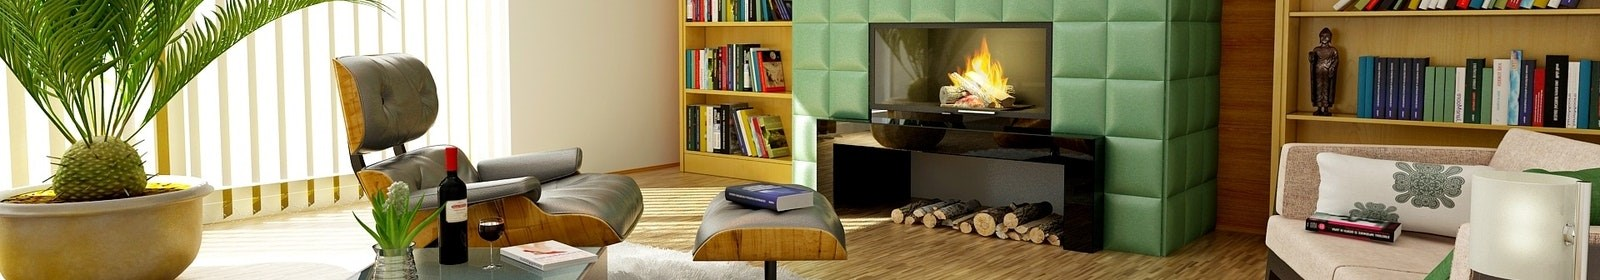 Not just wishful thinking: The rise of conscious design in the home